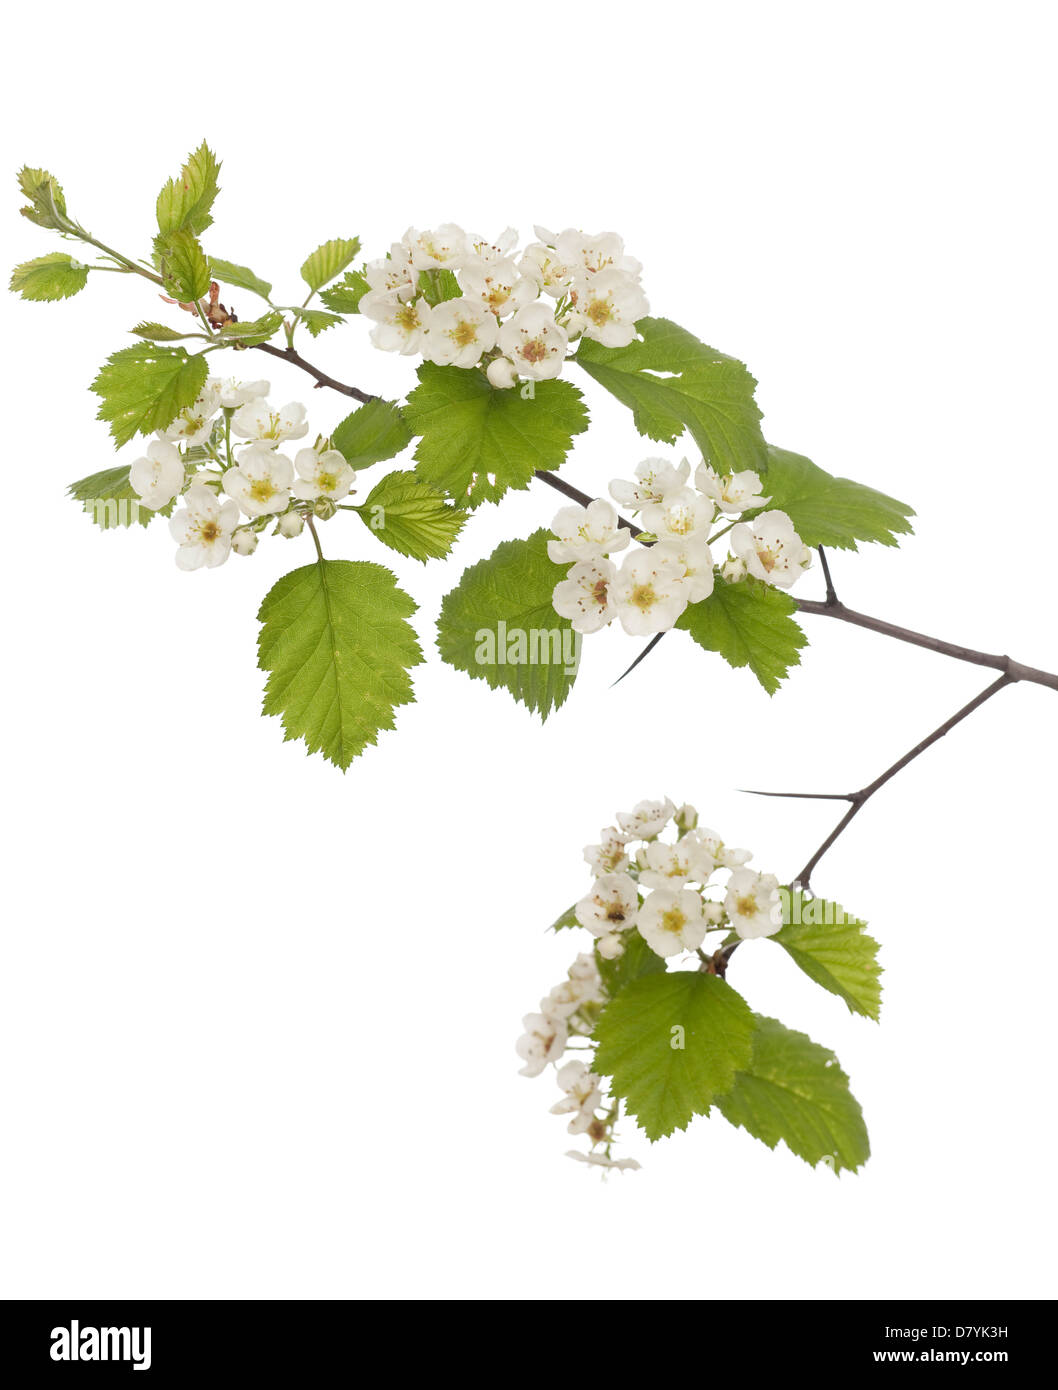 Hawthorn branch close up on white background - Stock Image